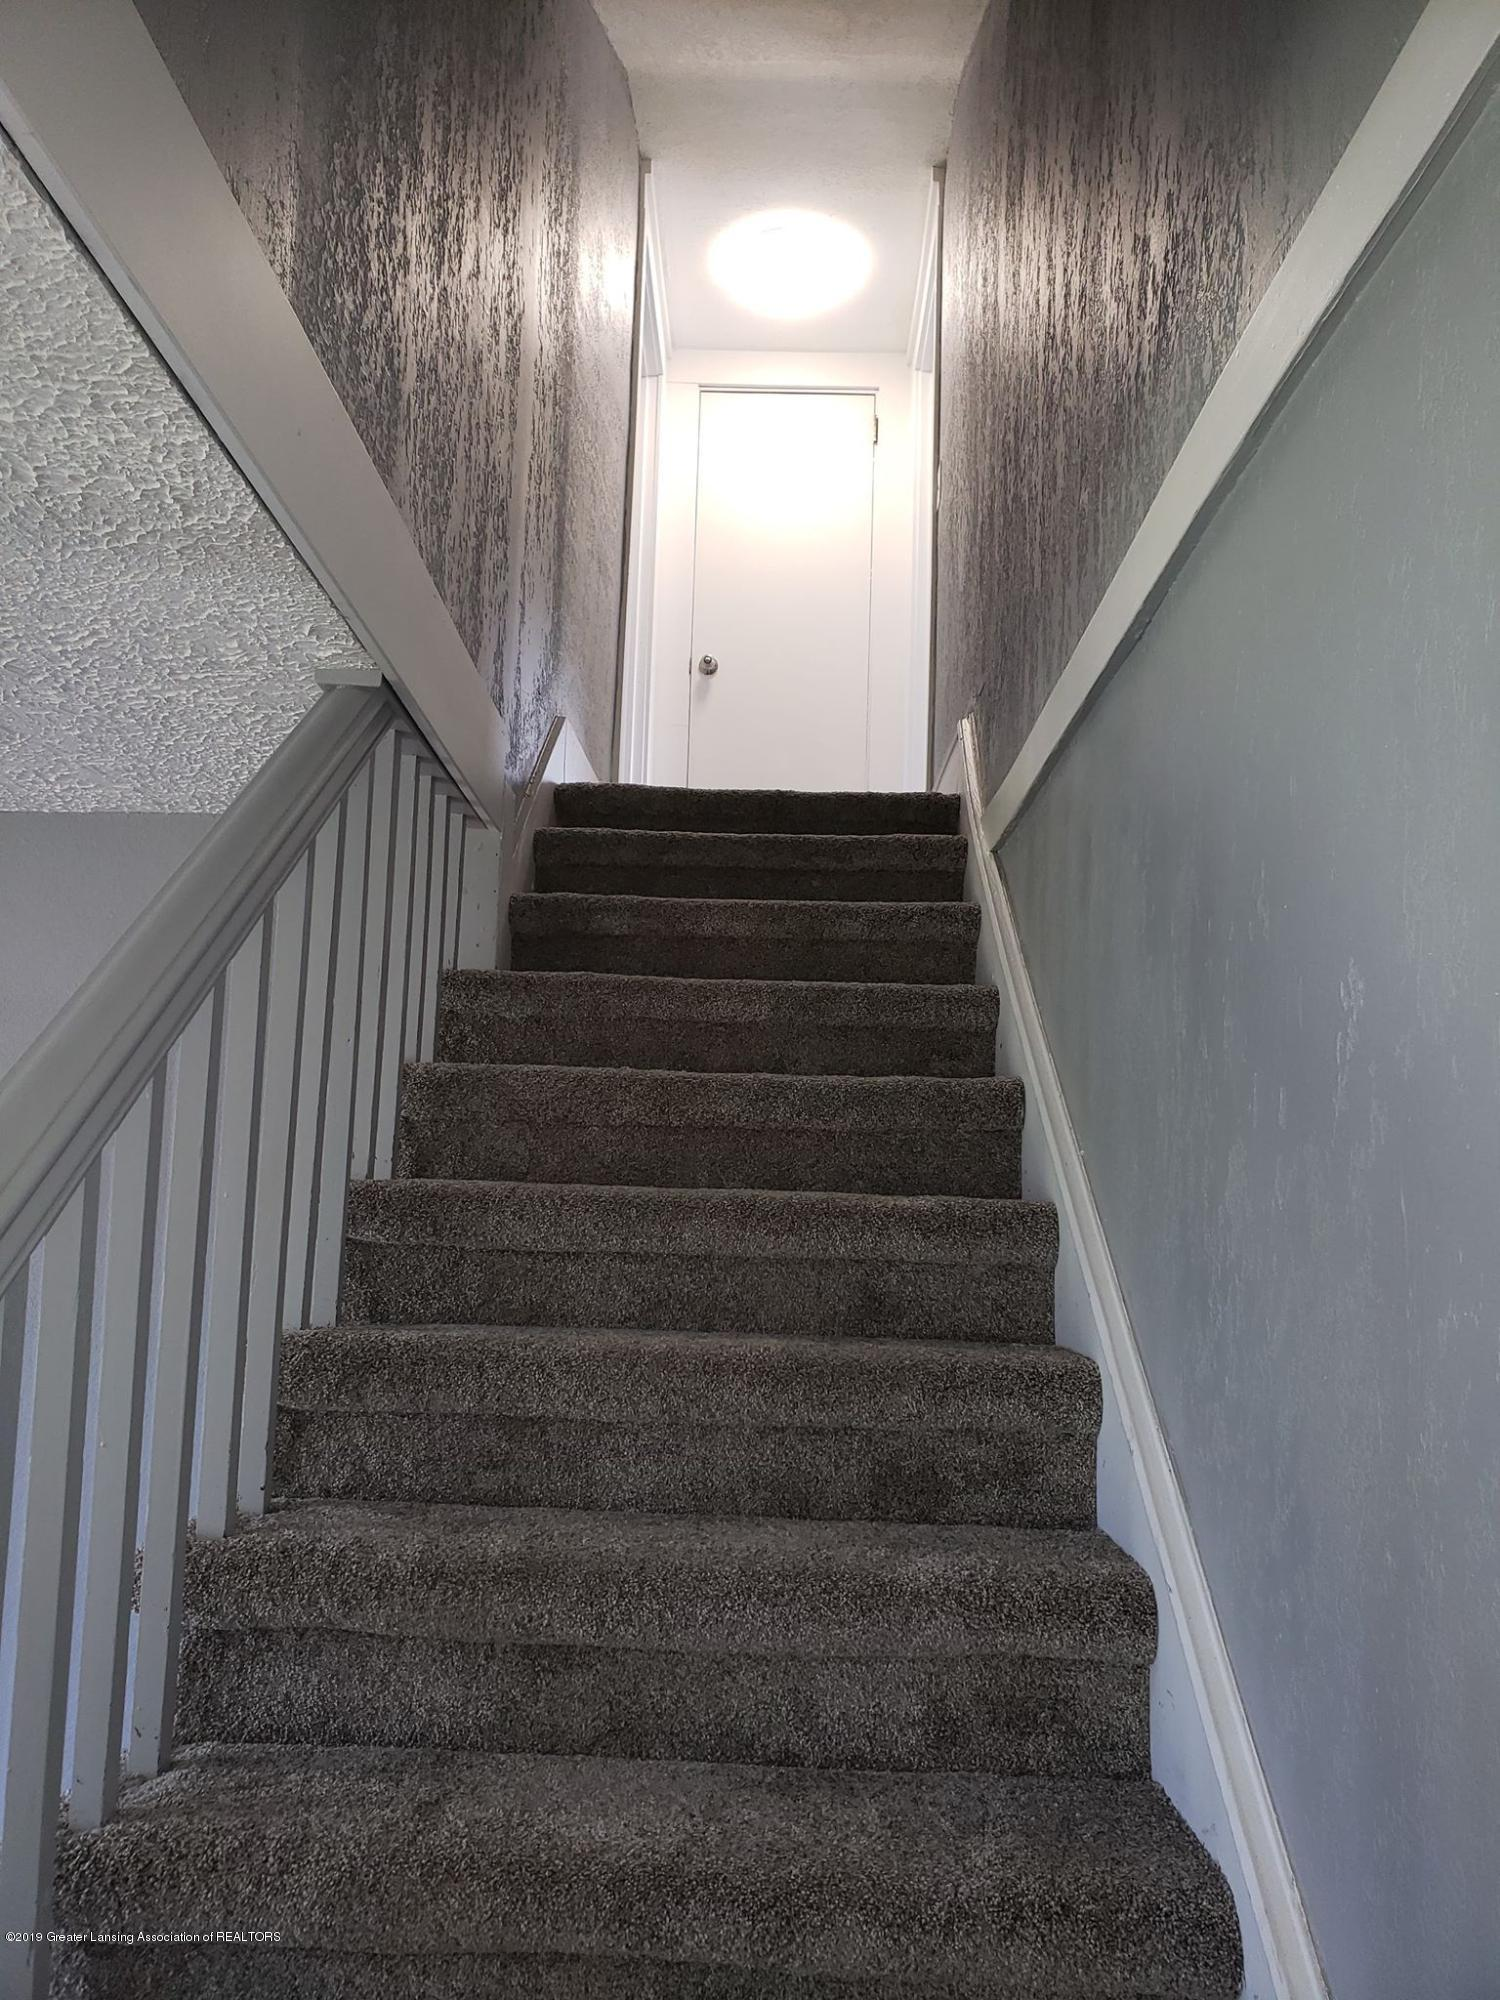 906 Hall St - Stairs - 32